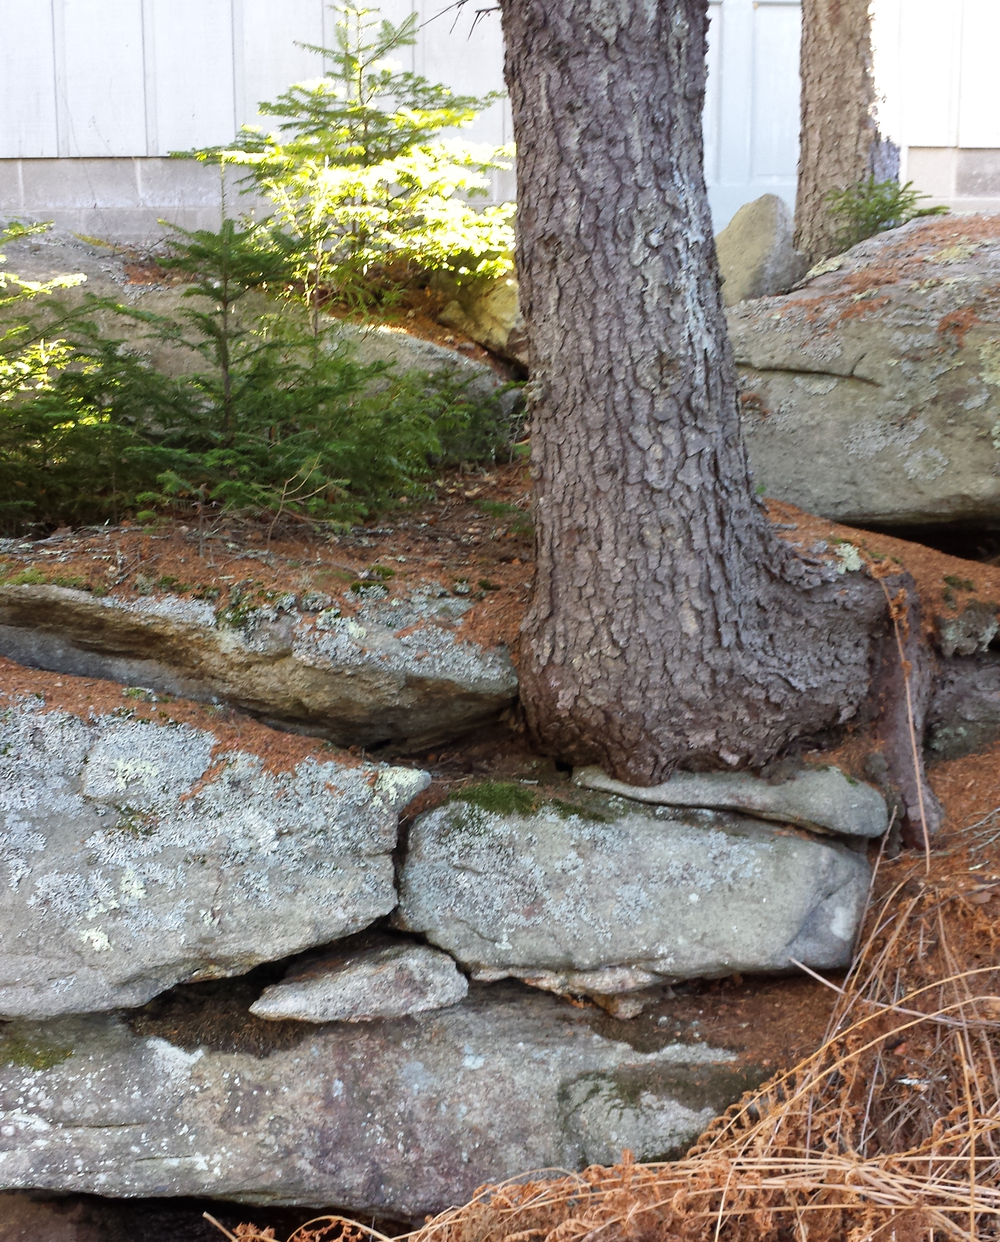 Trees, with enough resources, will grow in almost any location, as this tree growing out of a stone wall in Maine demonstrates. Photo: Topher Belknap